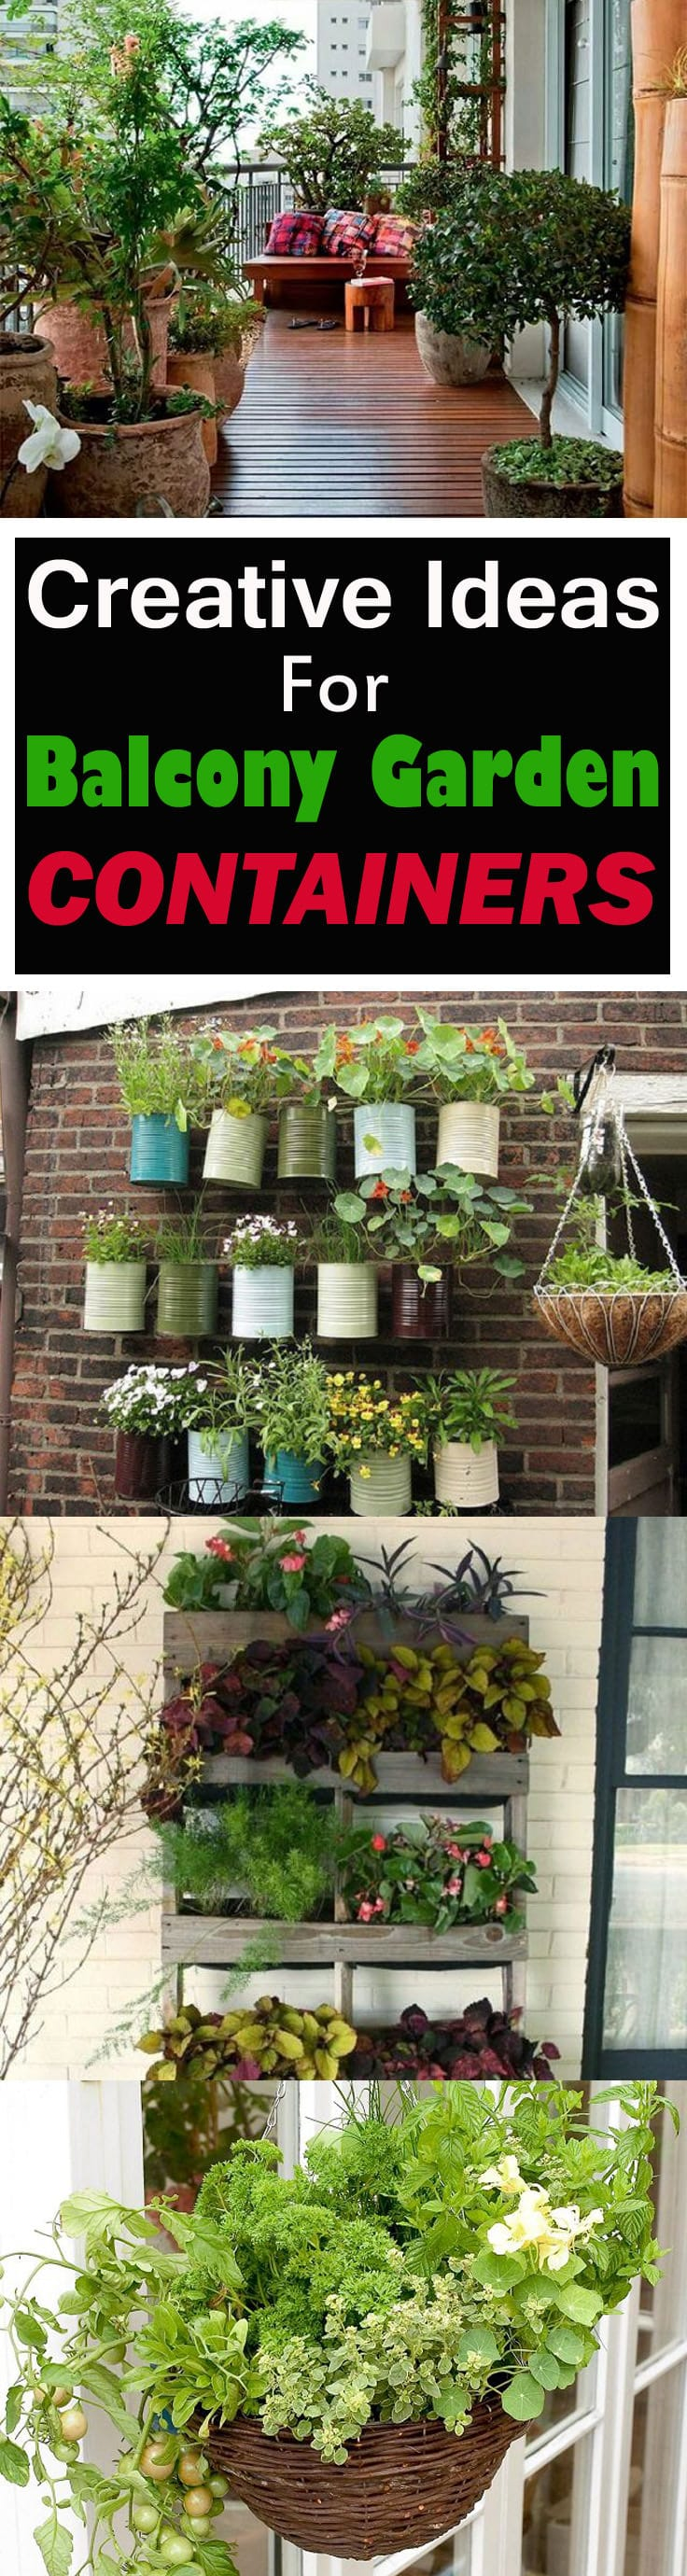 Fullsize Of Balcony Gardening Ideas